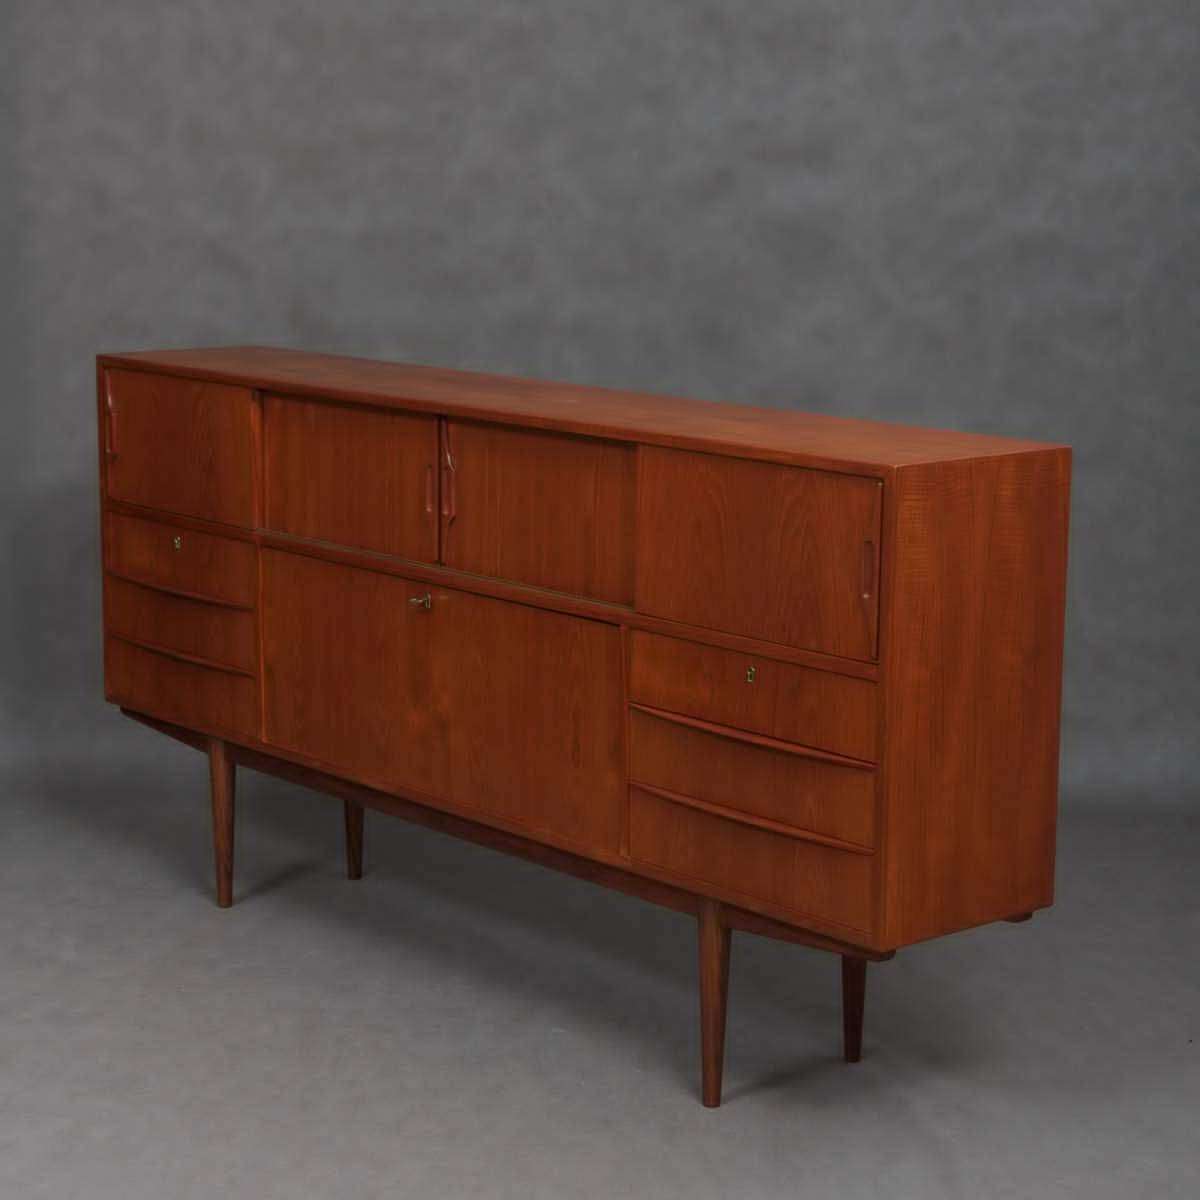 Mid Century Danish Sideboard With Illuminated Bar Cabinet, 1960s Regarding Recent Sideboard Bar Cabinet (View 6 of 15)